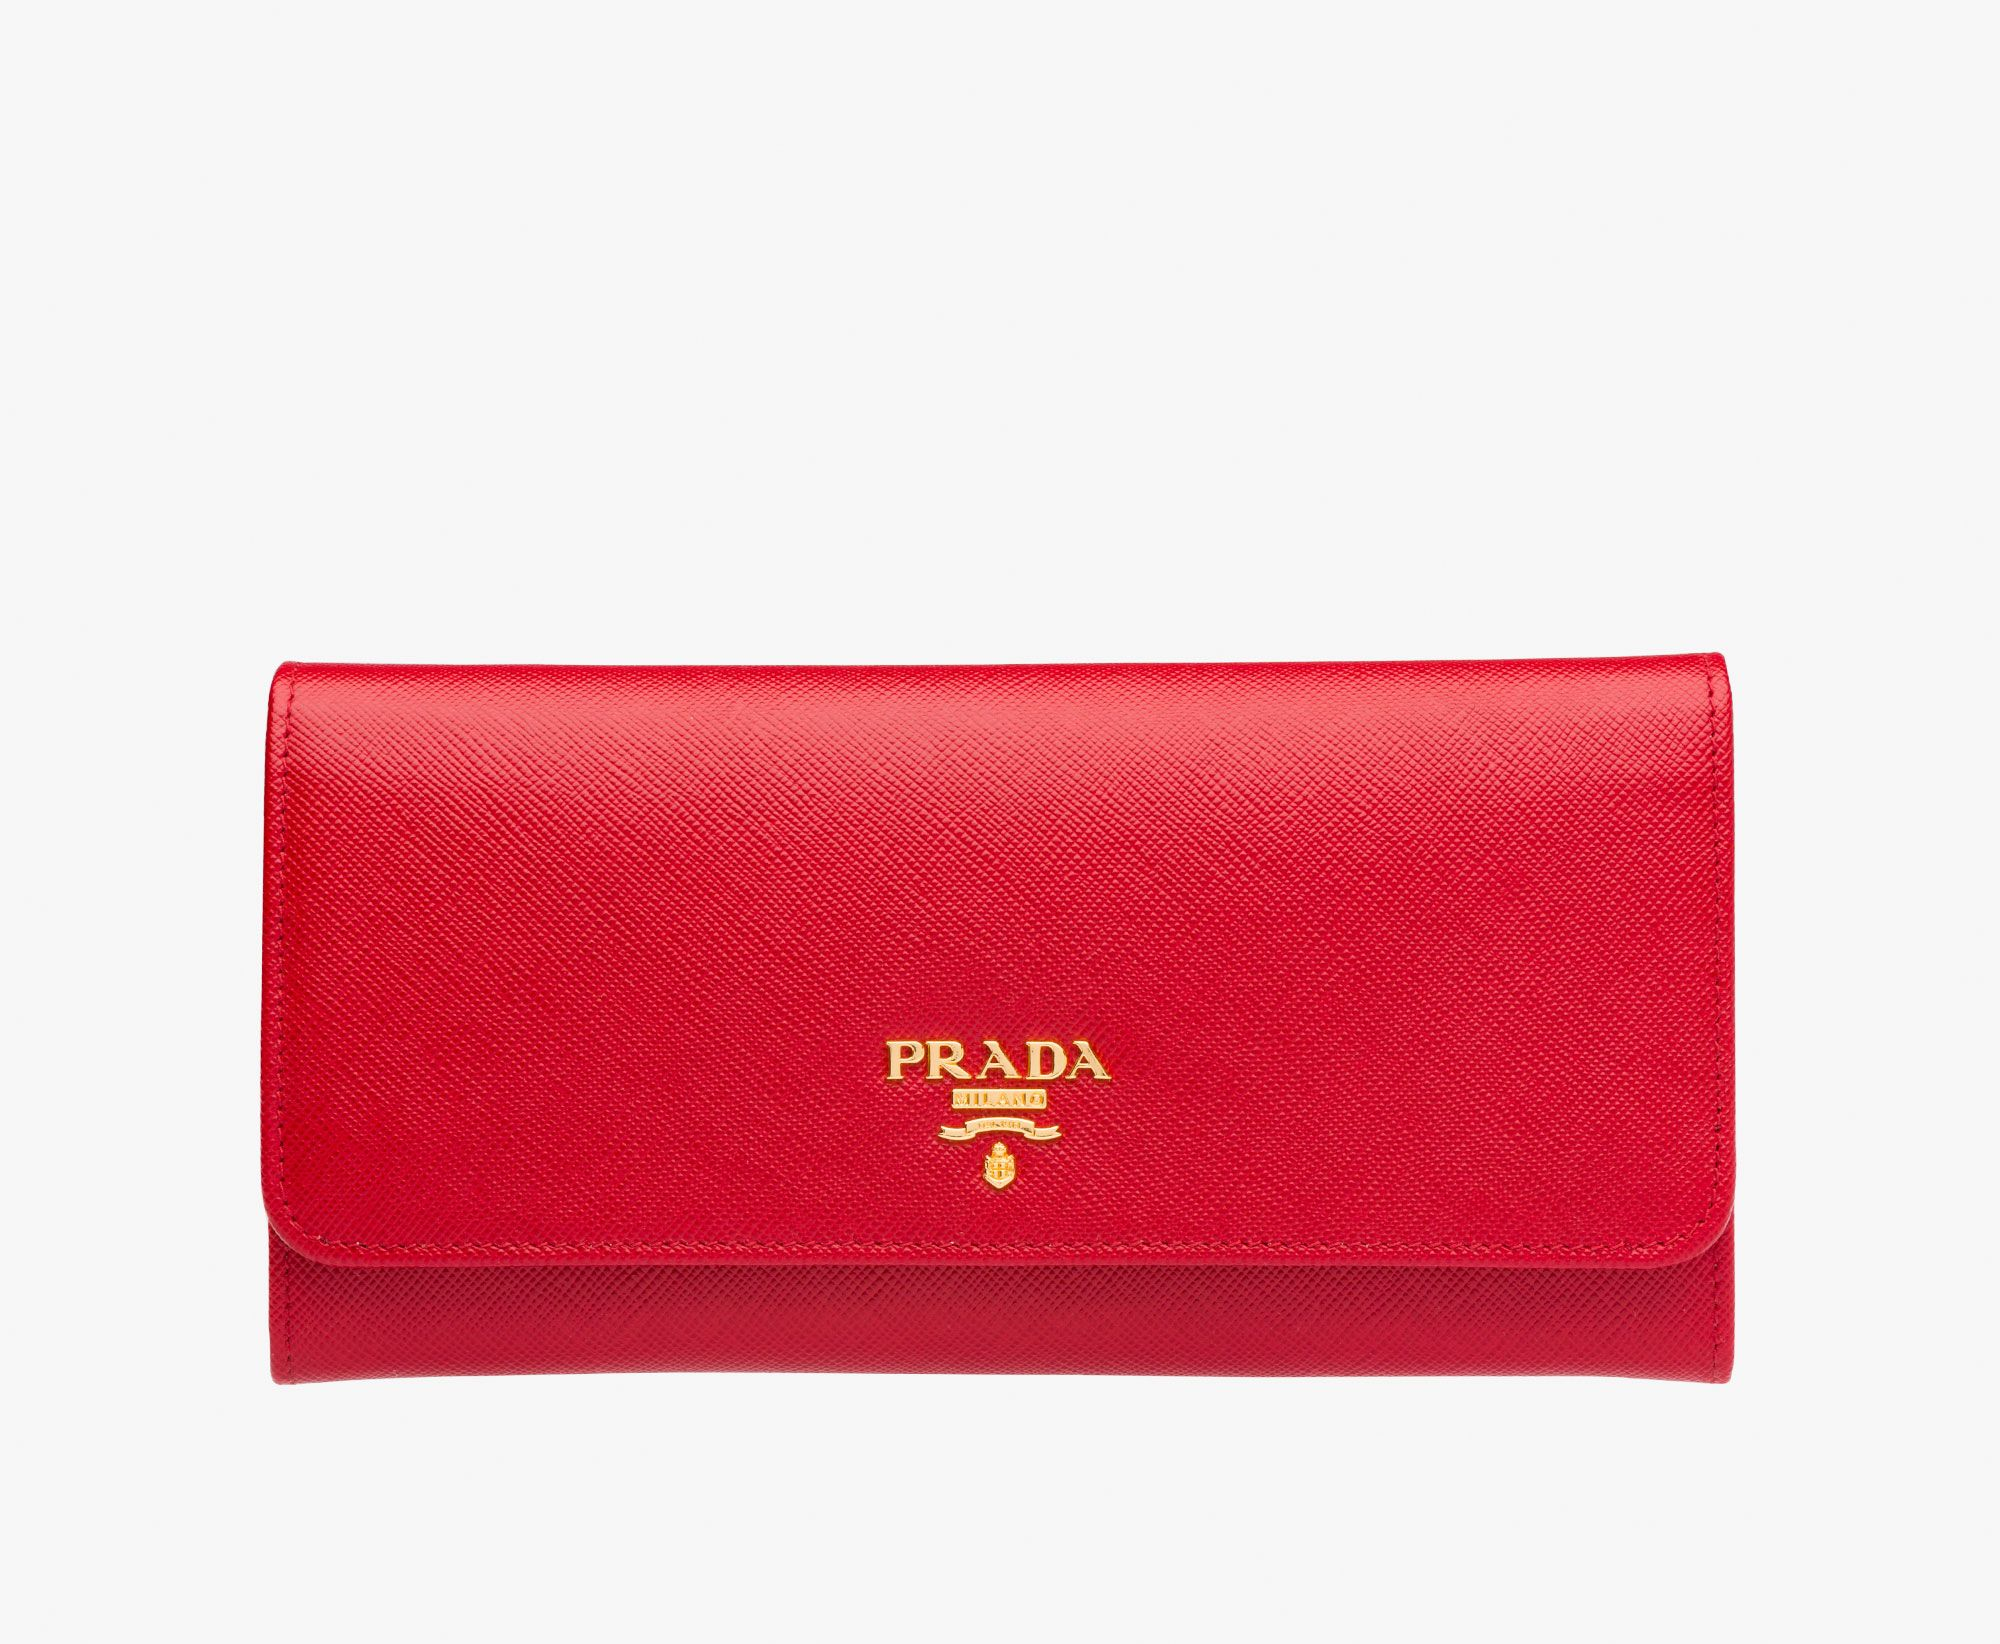 168e208889f4f Saffiano leather flap wallet Gold-plated hardware Metal lettering logo Snap  closure Ten credit card